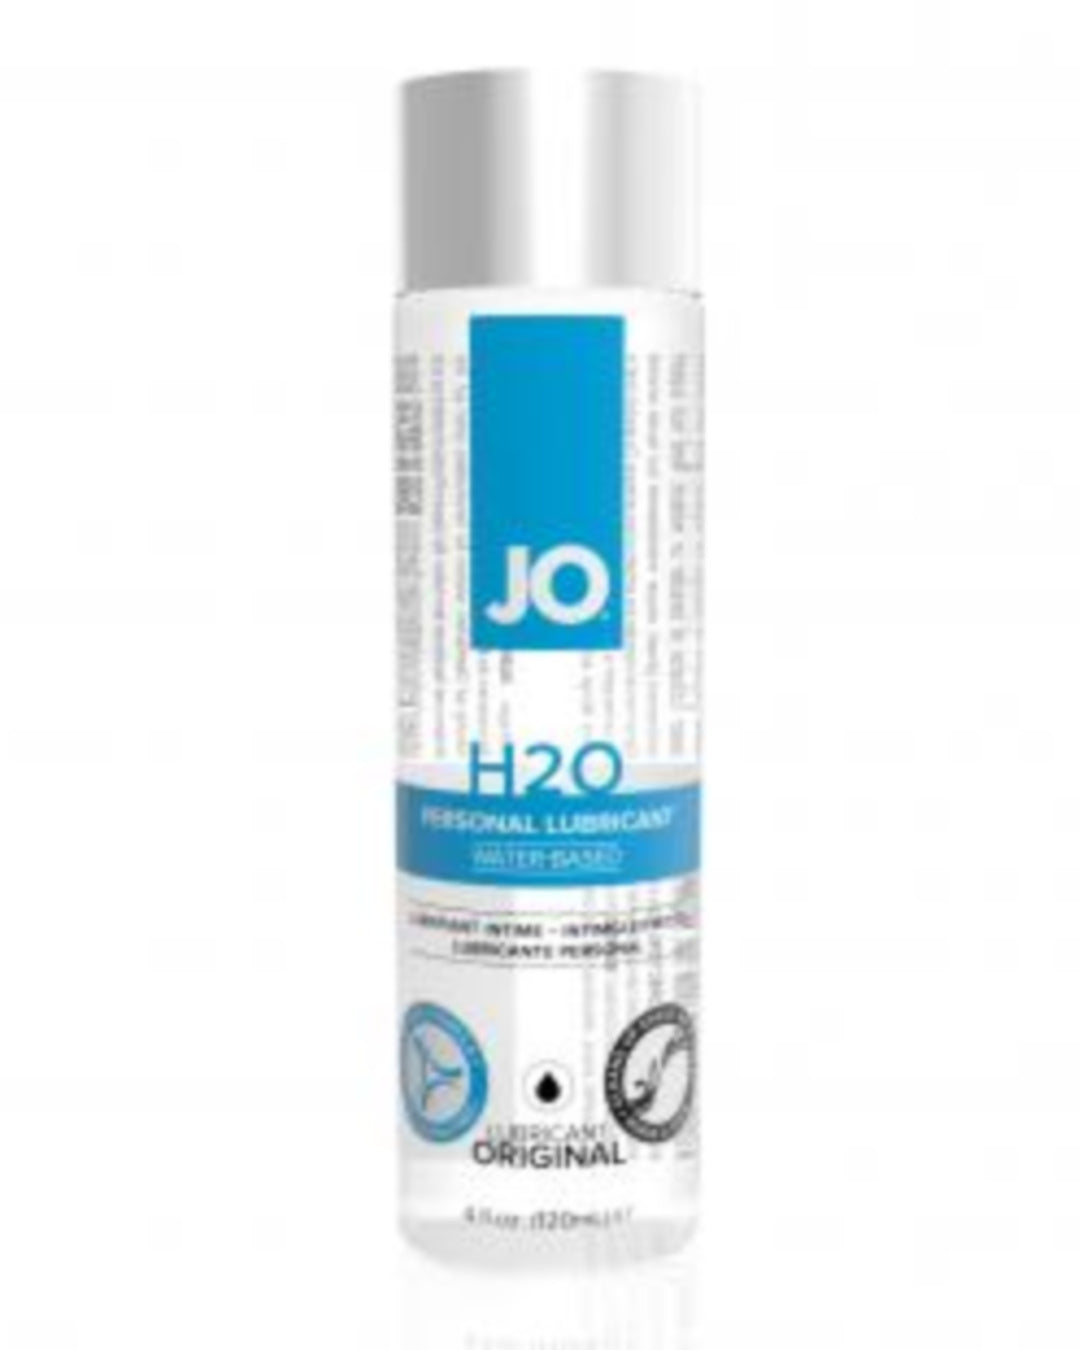 Jo H2O Original Water Based Lubricant